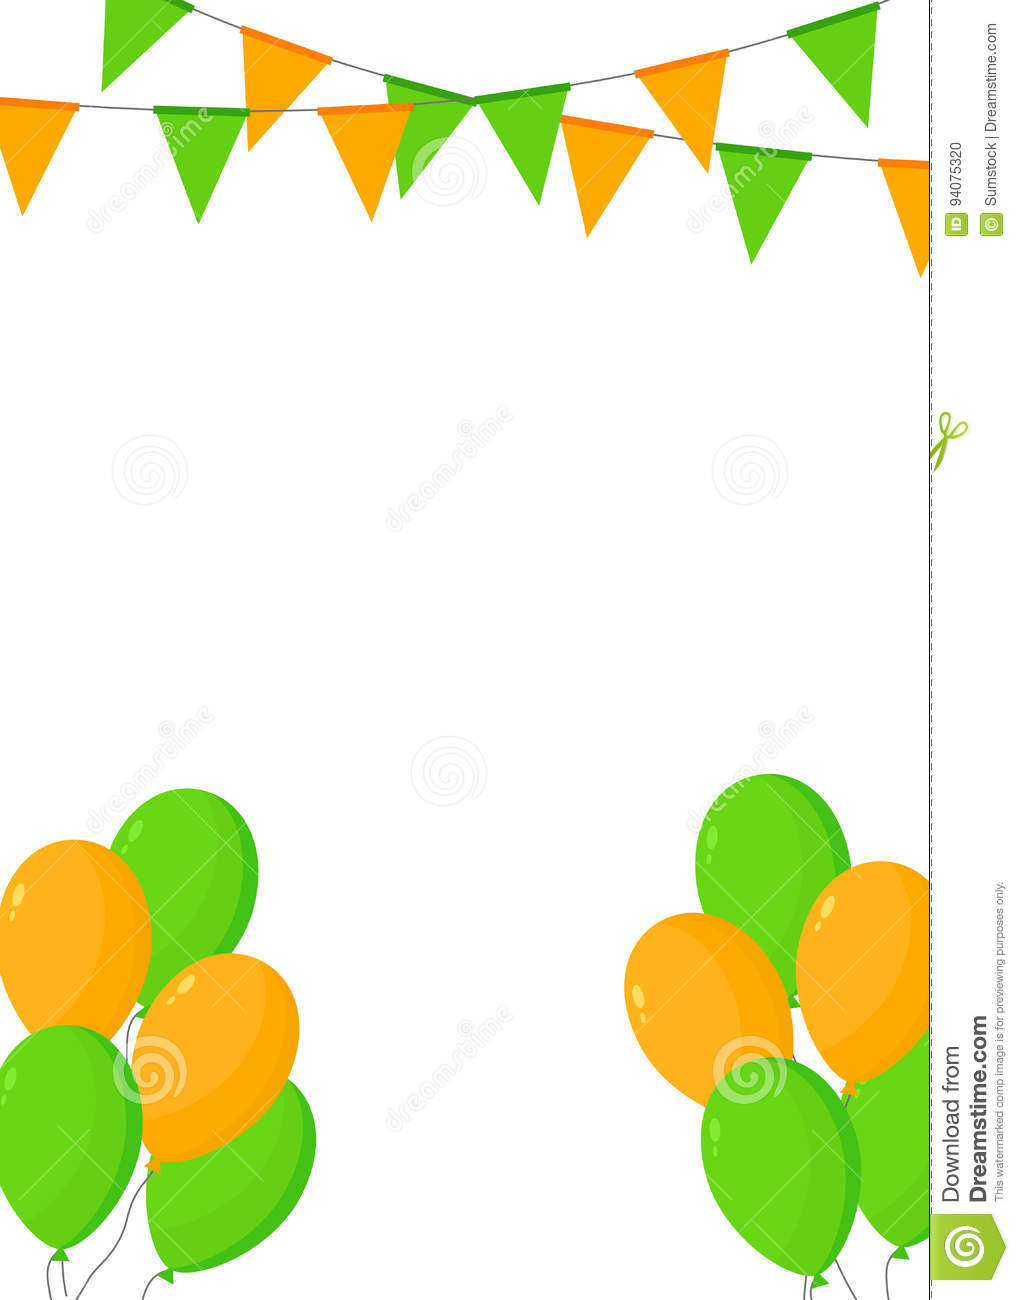 Orange and green buntings and balloons